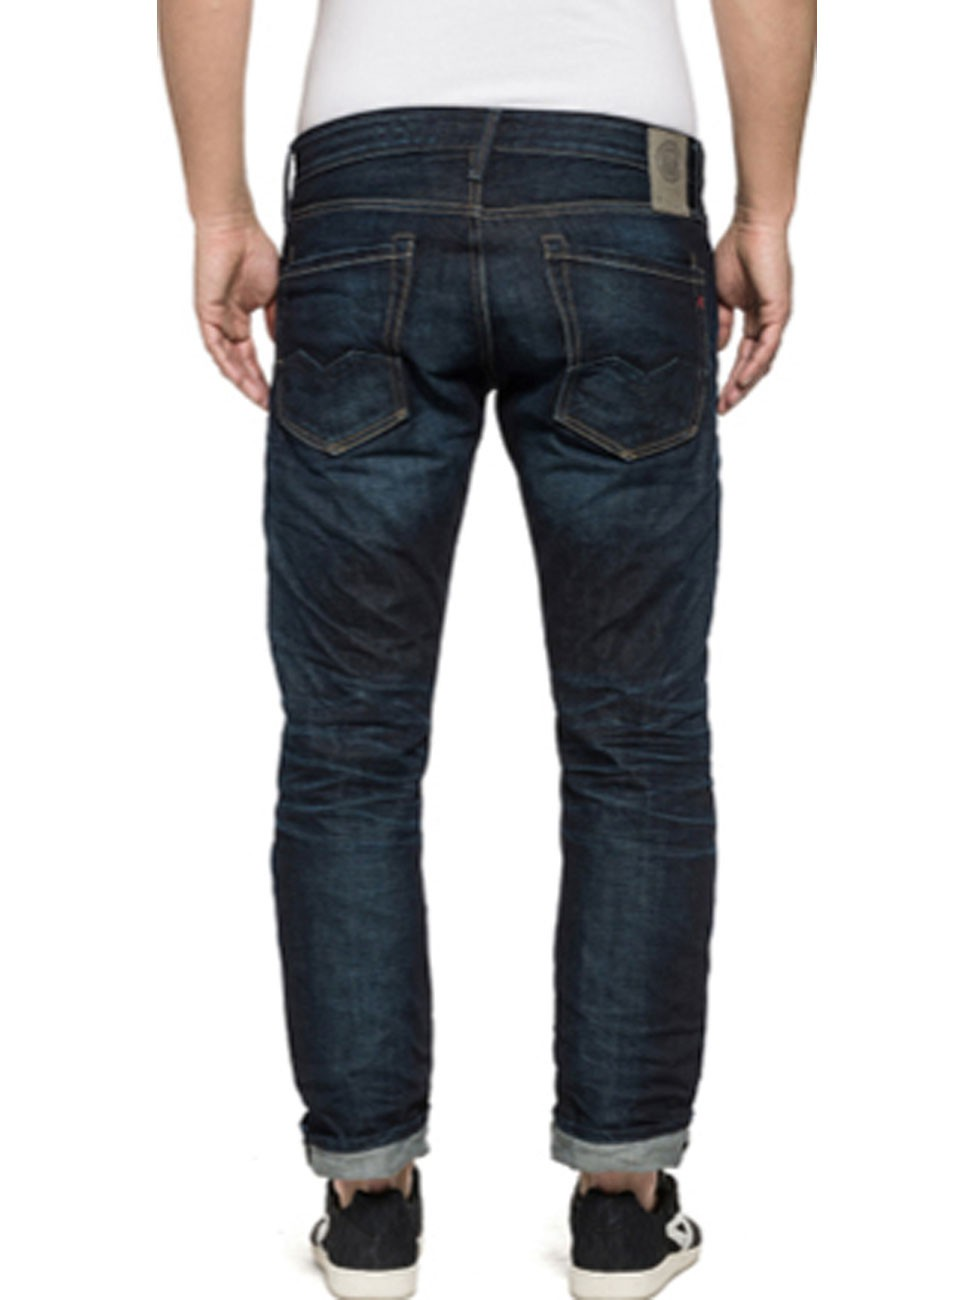 Replay Herren Jeans Waitom Regular Fit - Slim Leg - Blau - Green Cast Denim